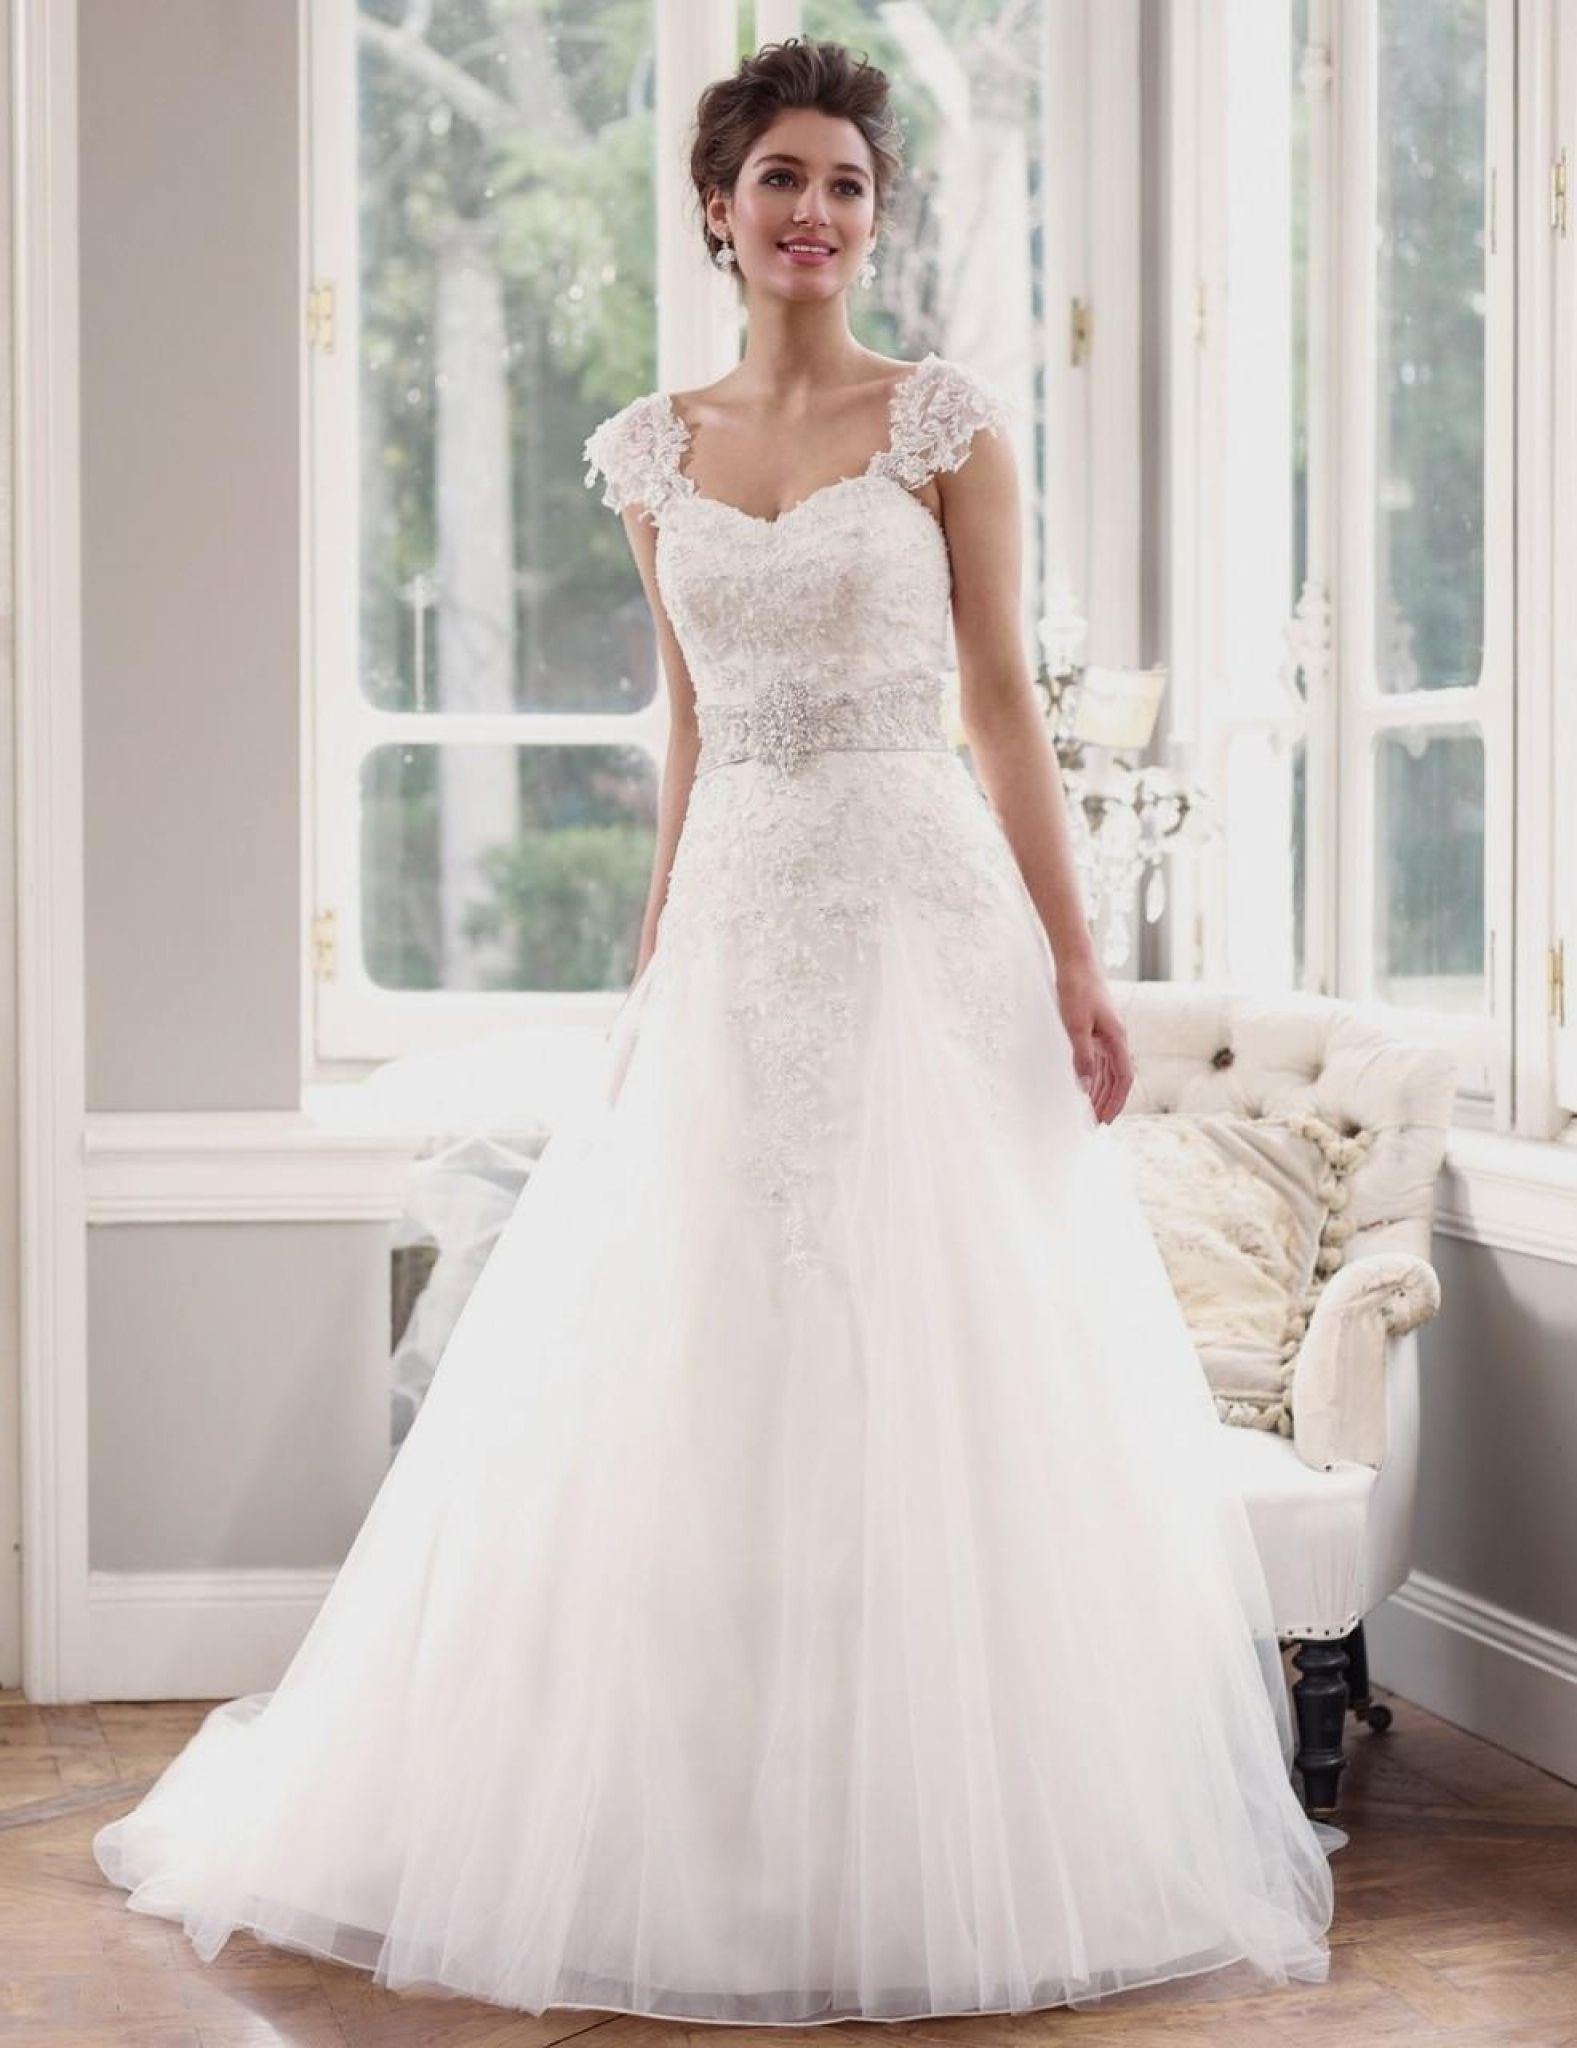 Long sleeve wedding dress topper  wedding dresses cap sleeves  dresses for wedding reception Check